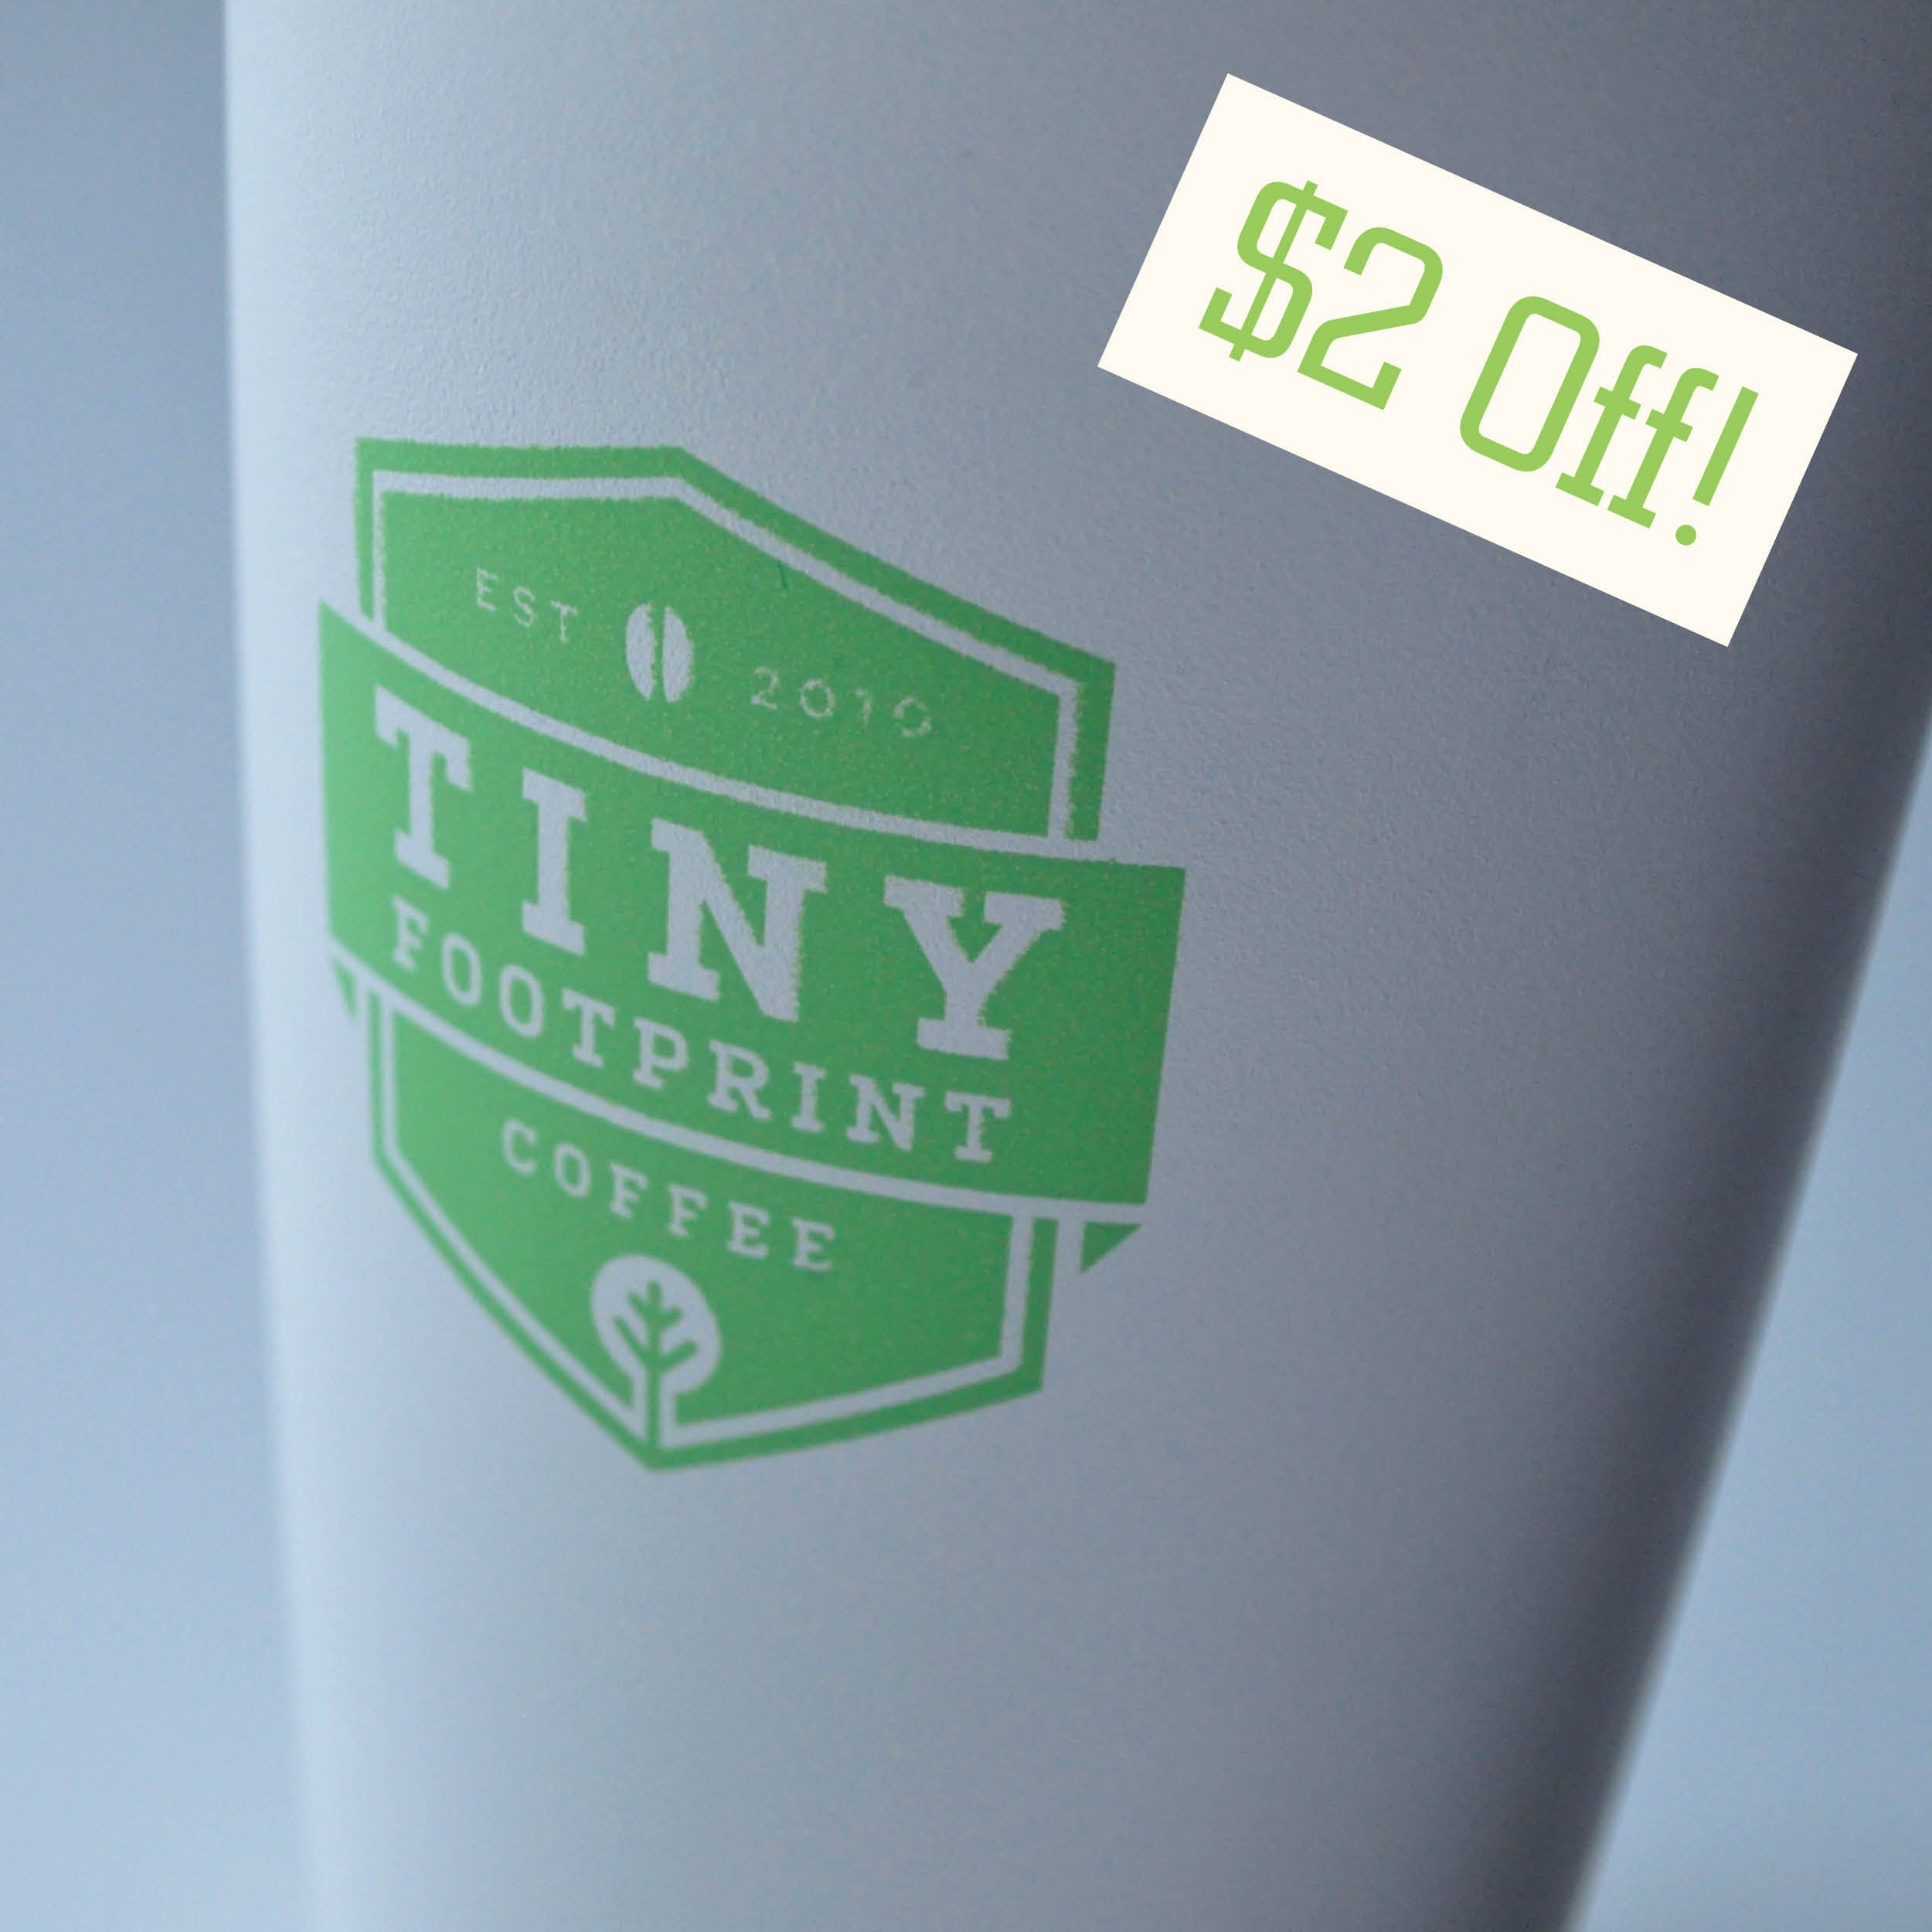 Tiny Travel Mug by MiiR - 16 oz.